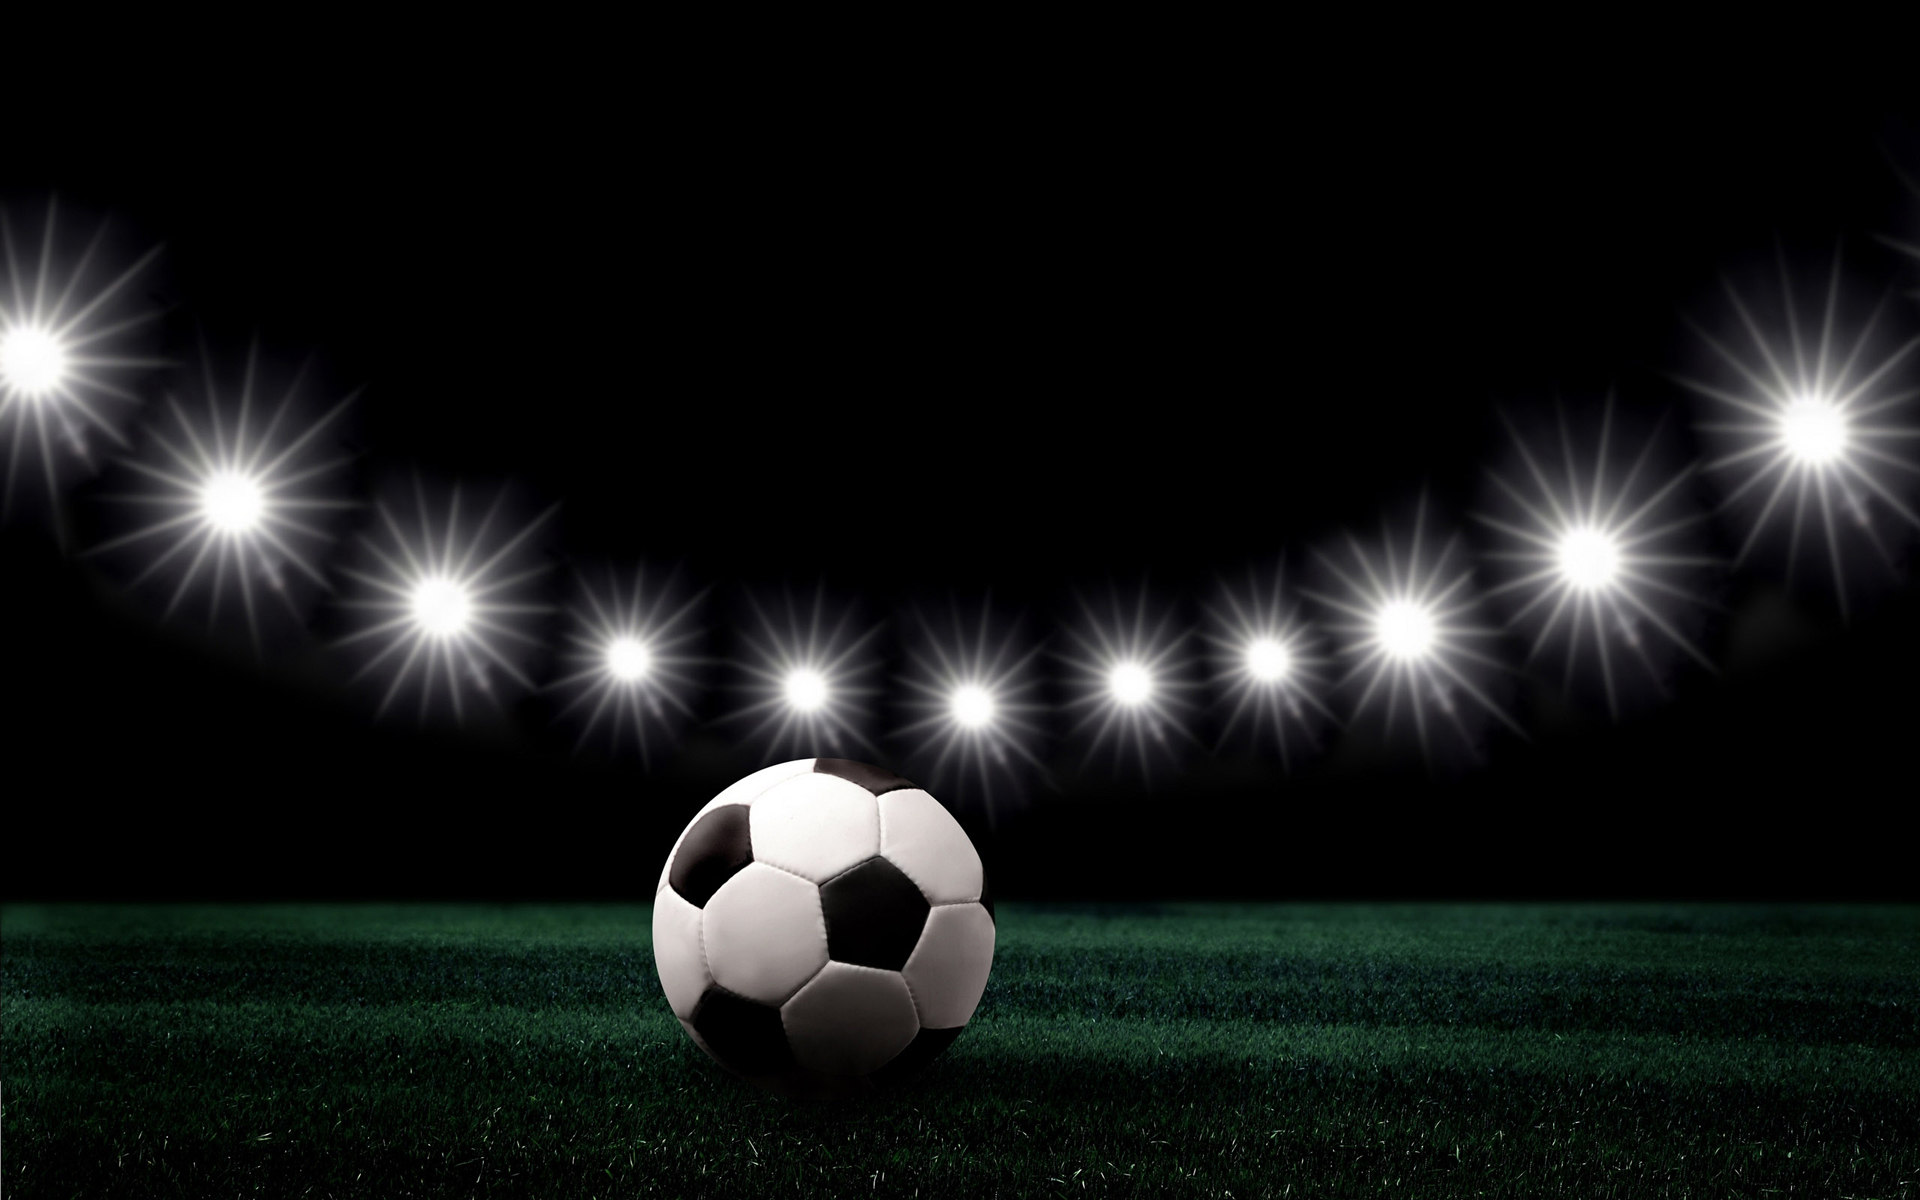 HD Soccer Football Background